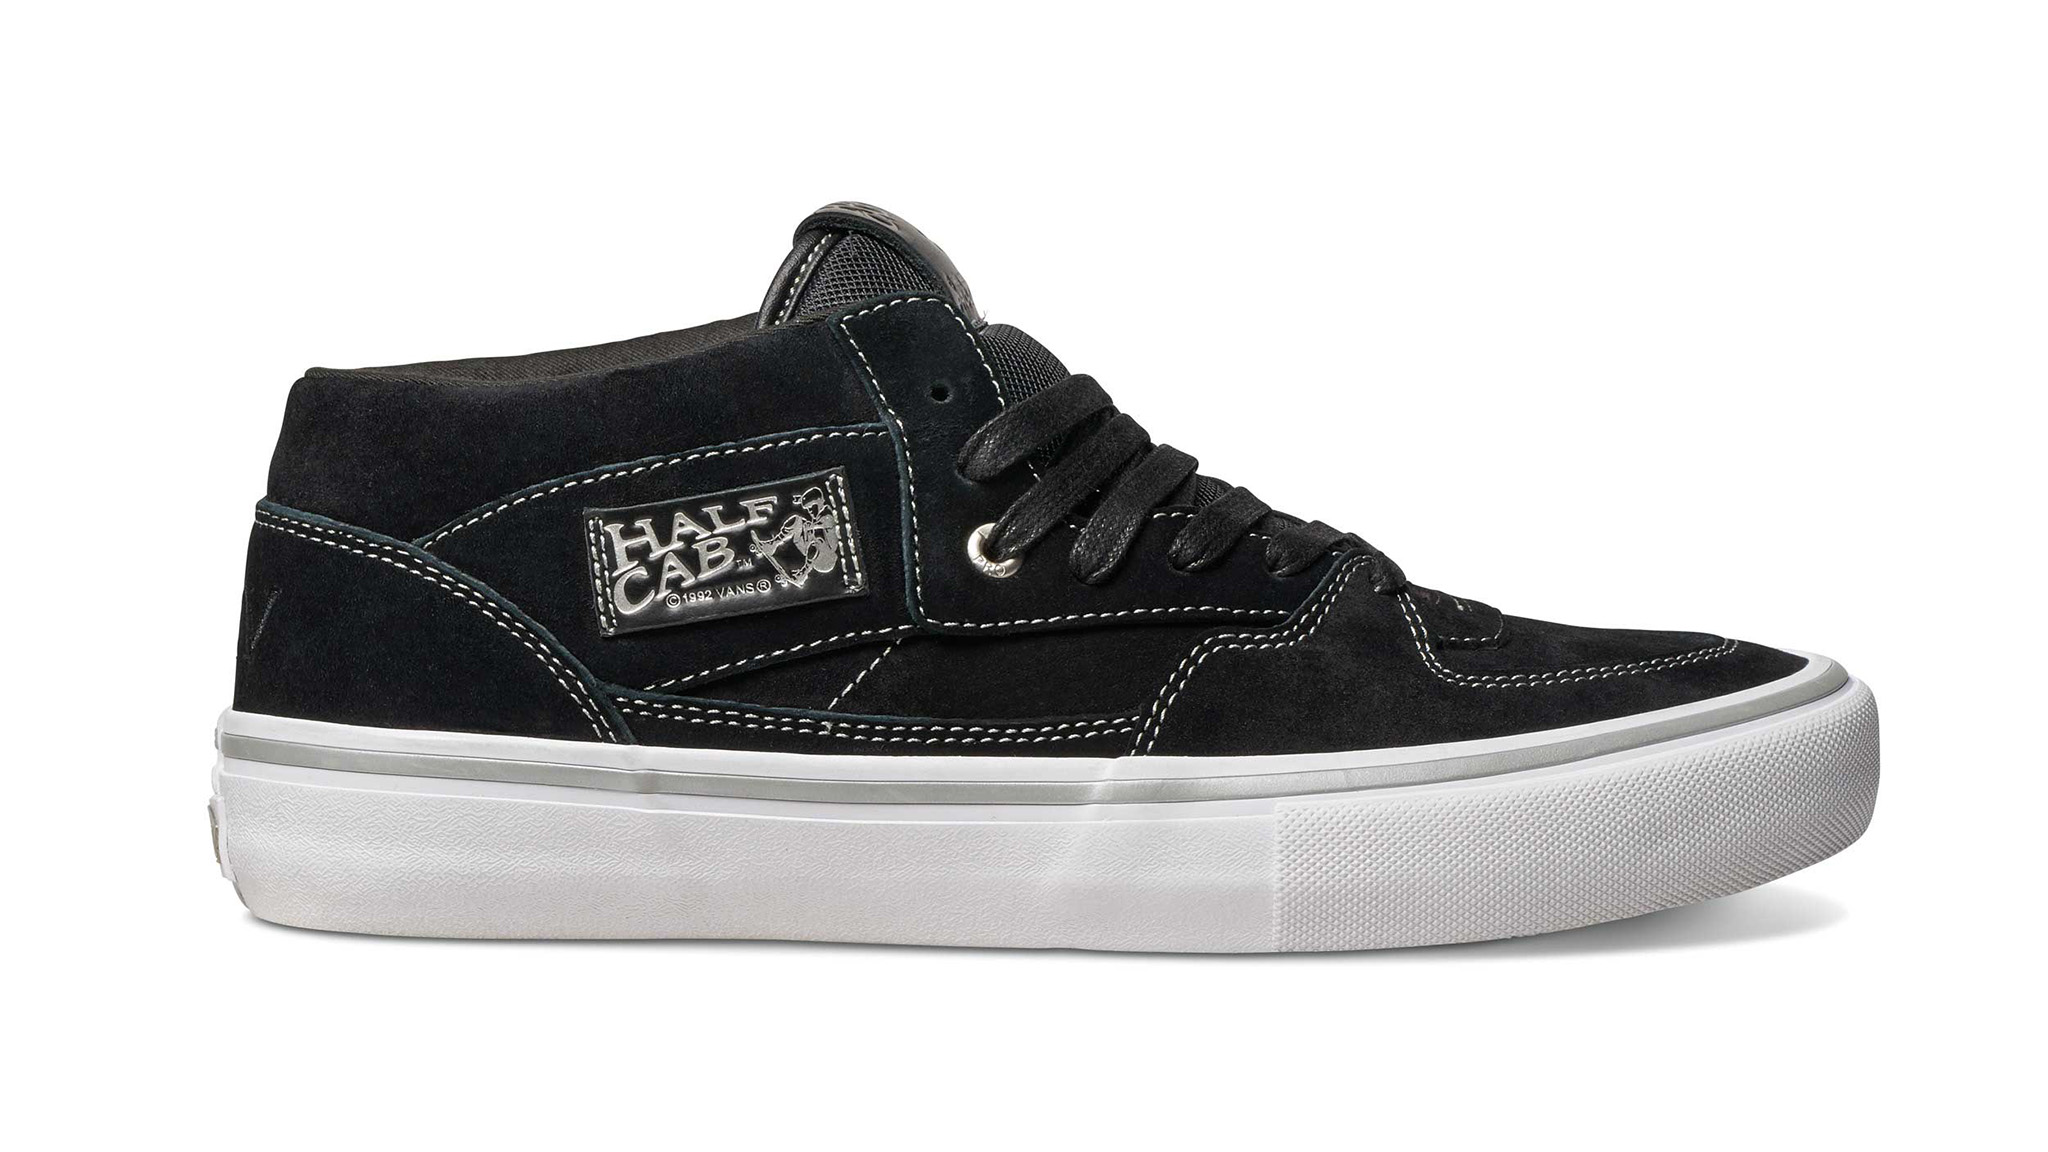 This fall, the Vans Half Cab turns 25.